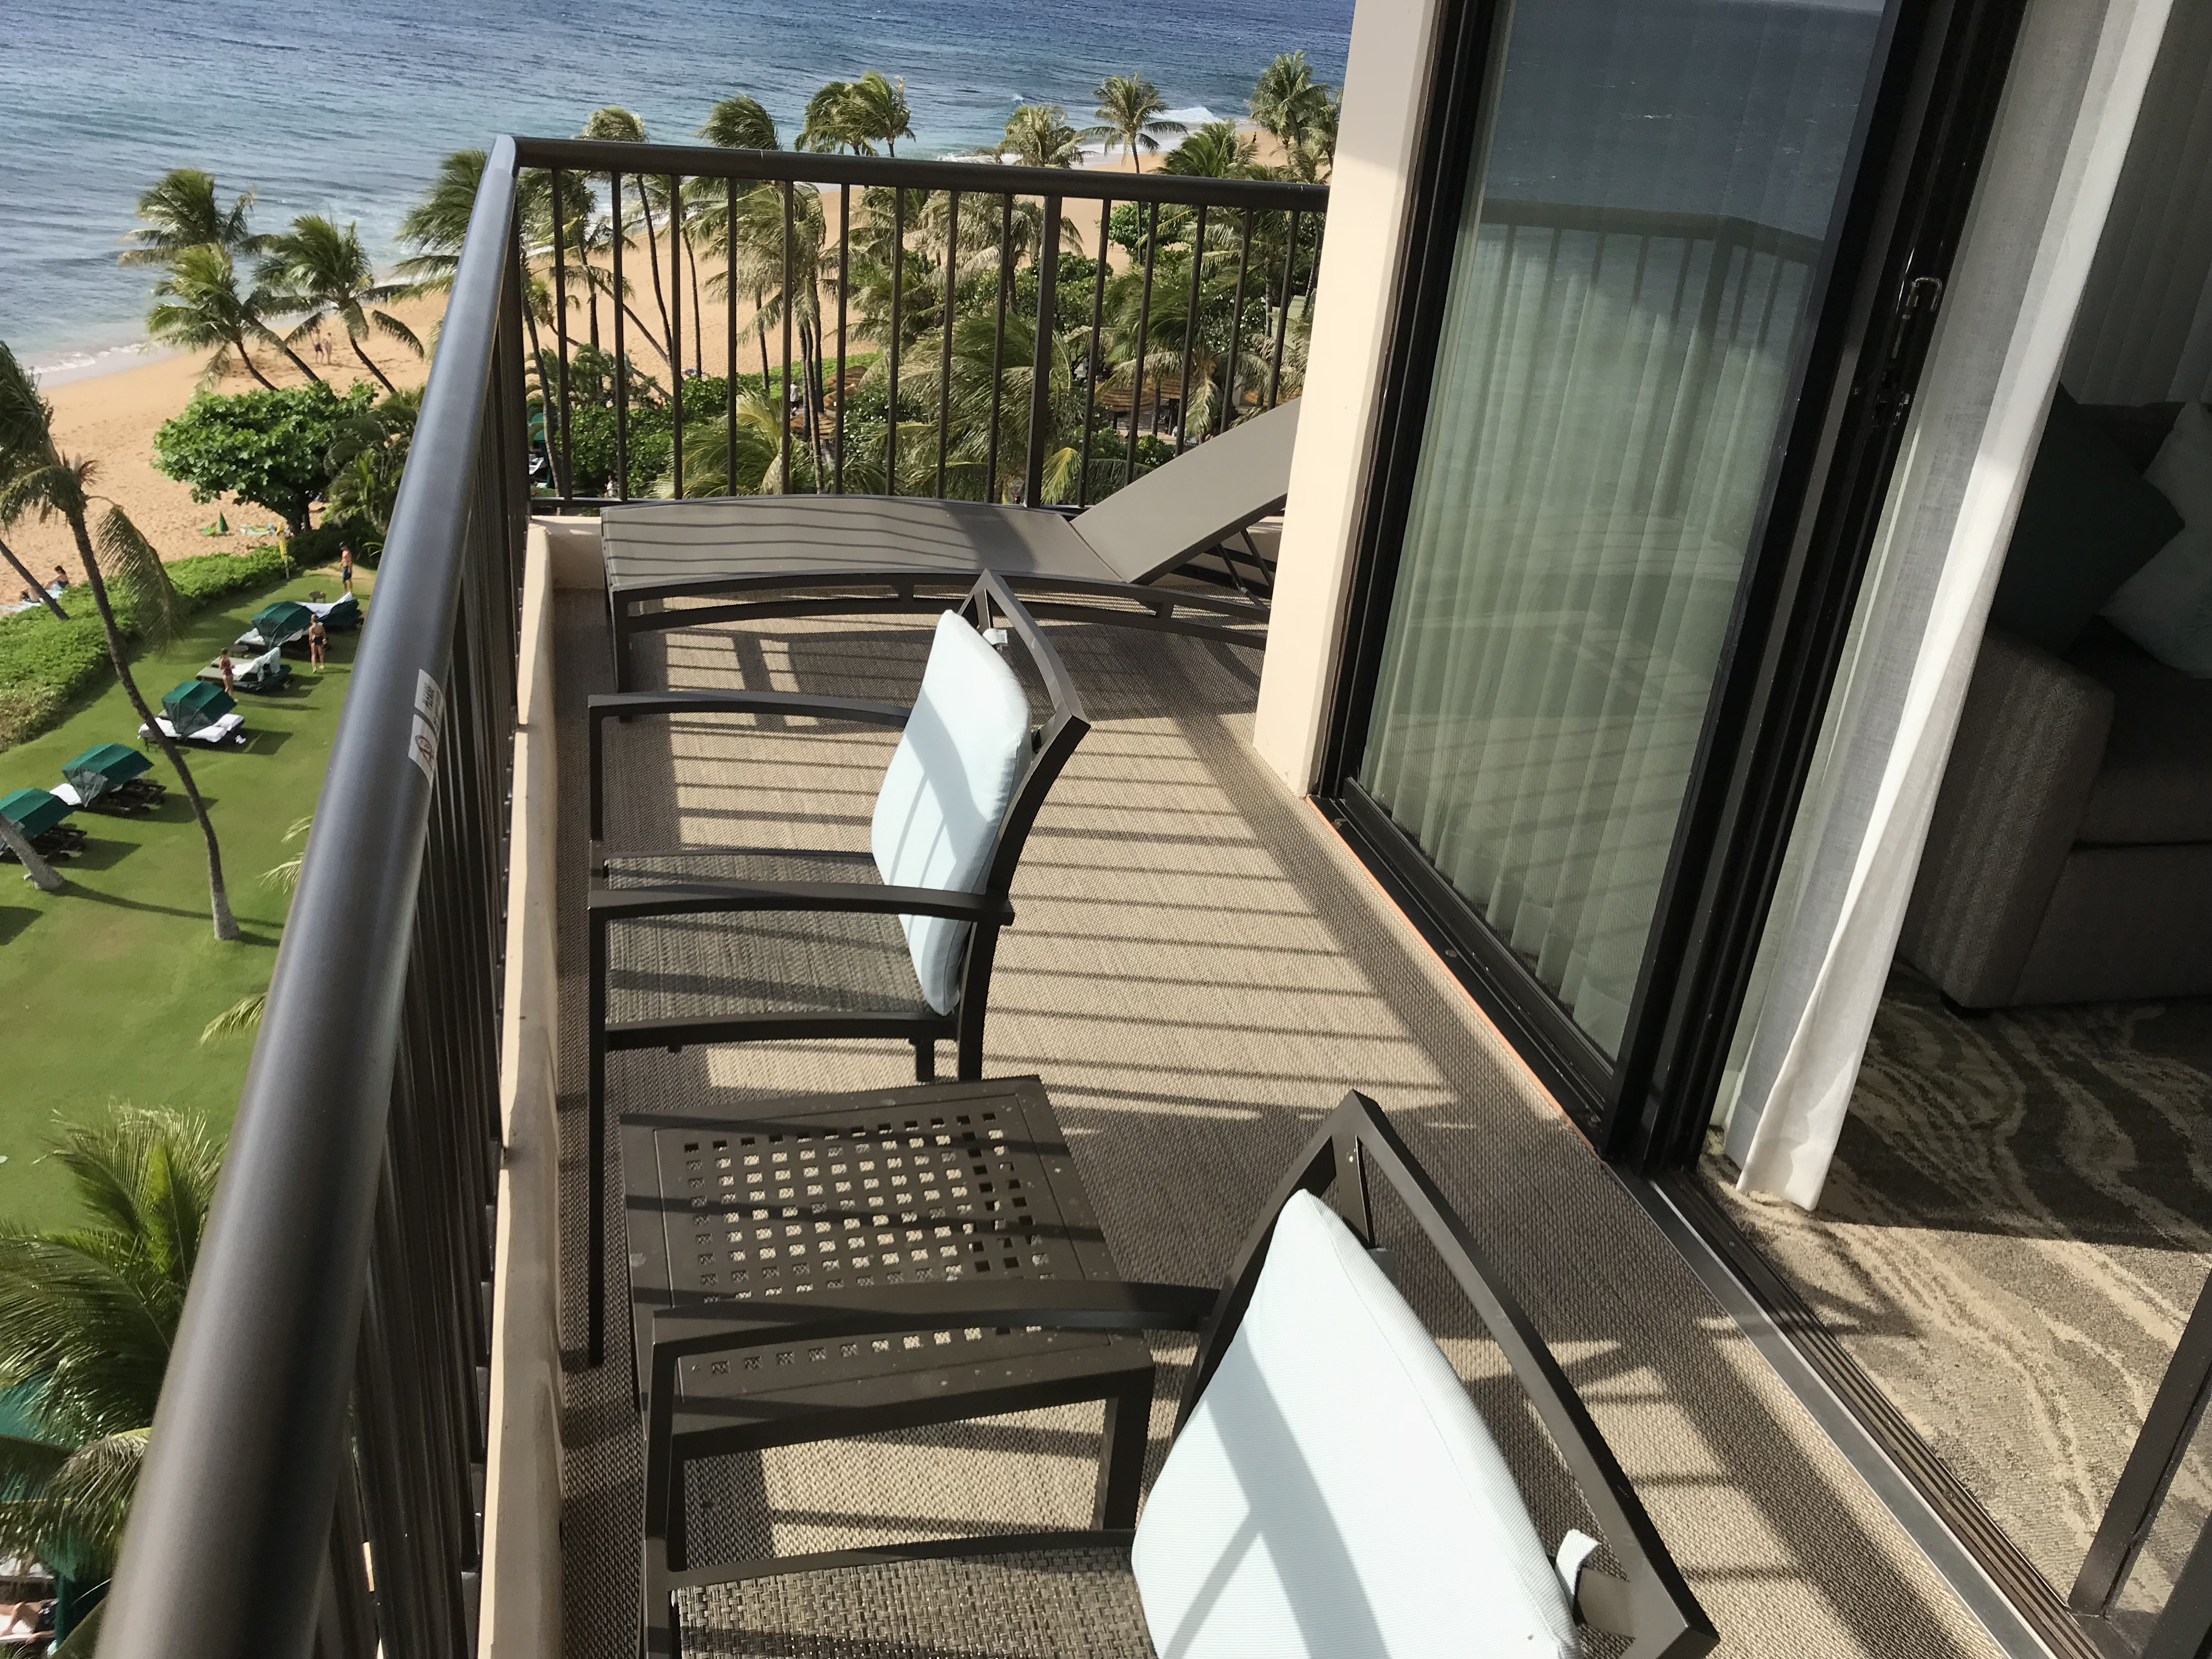 Marriott Maui Ocean Club | timeshare users group